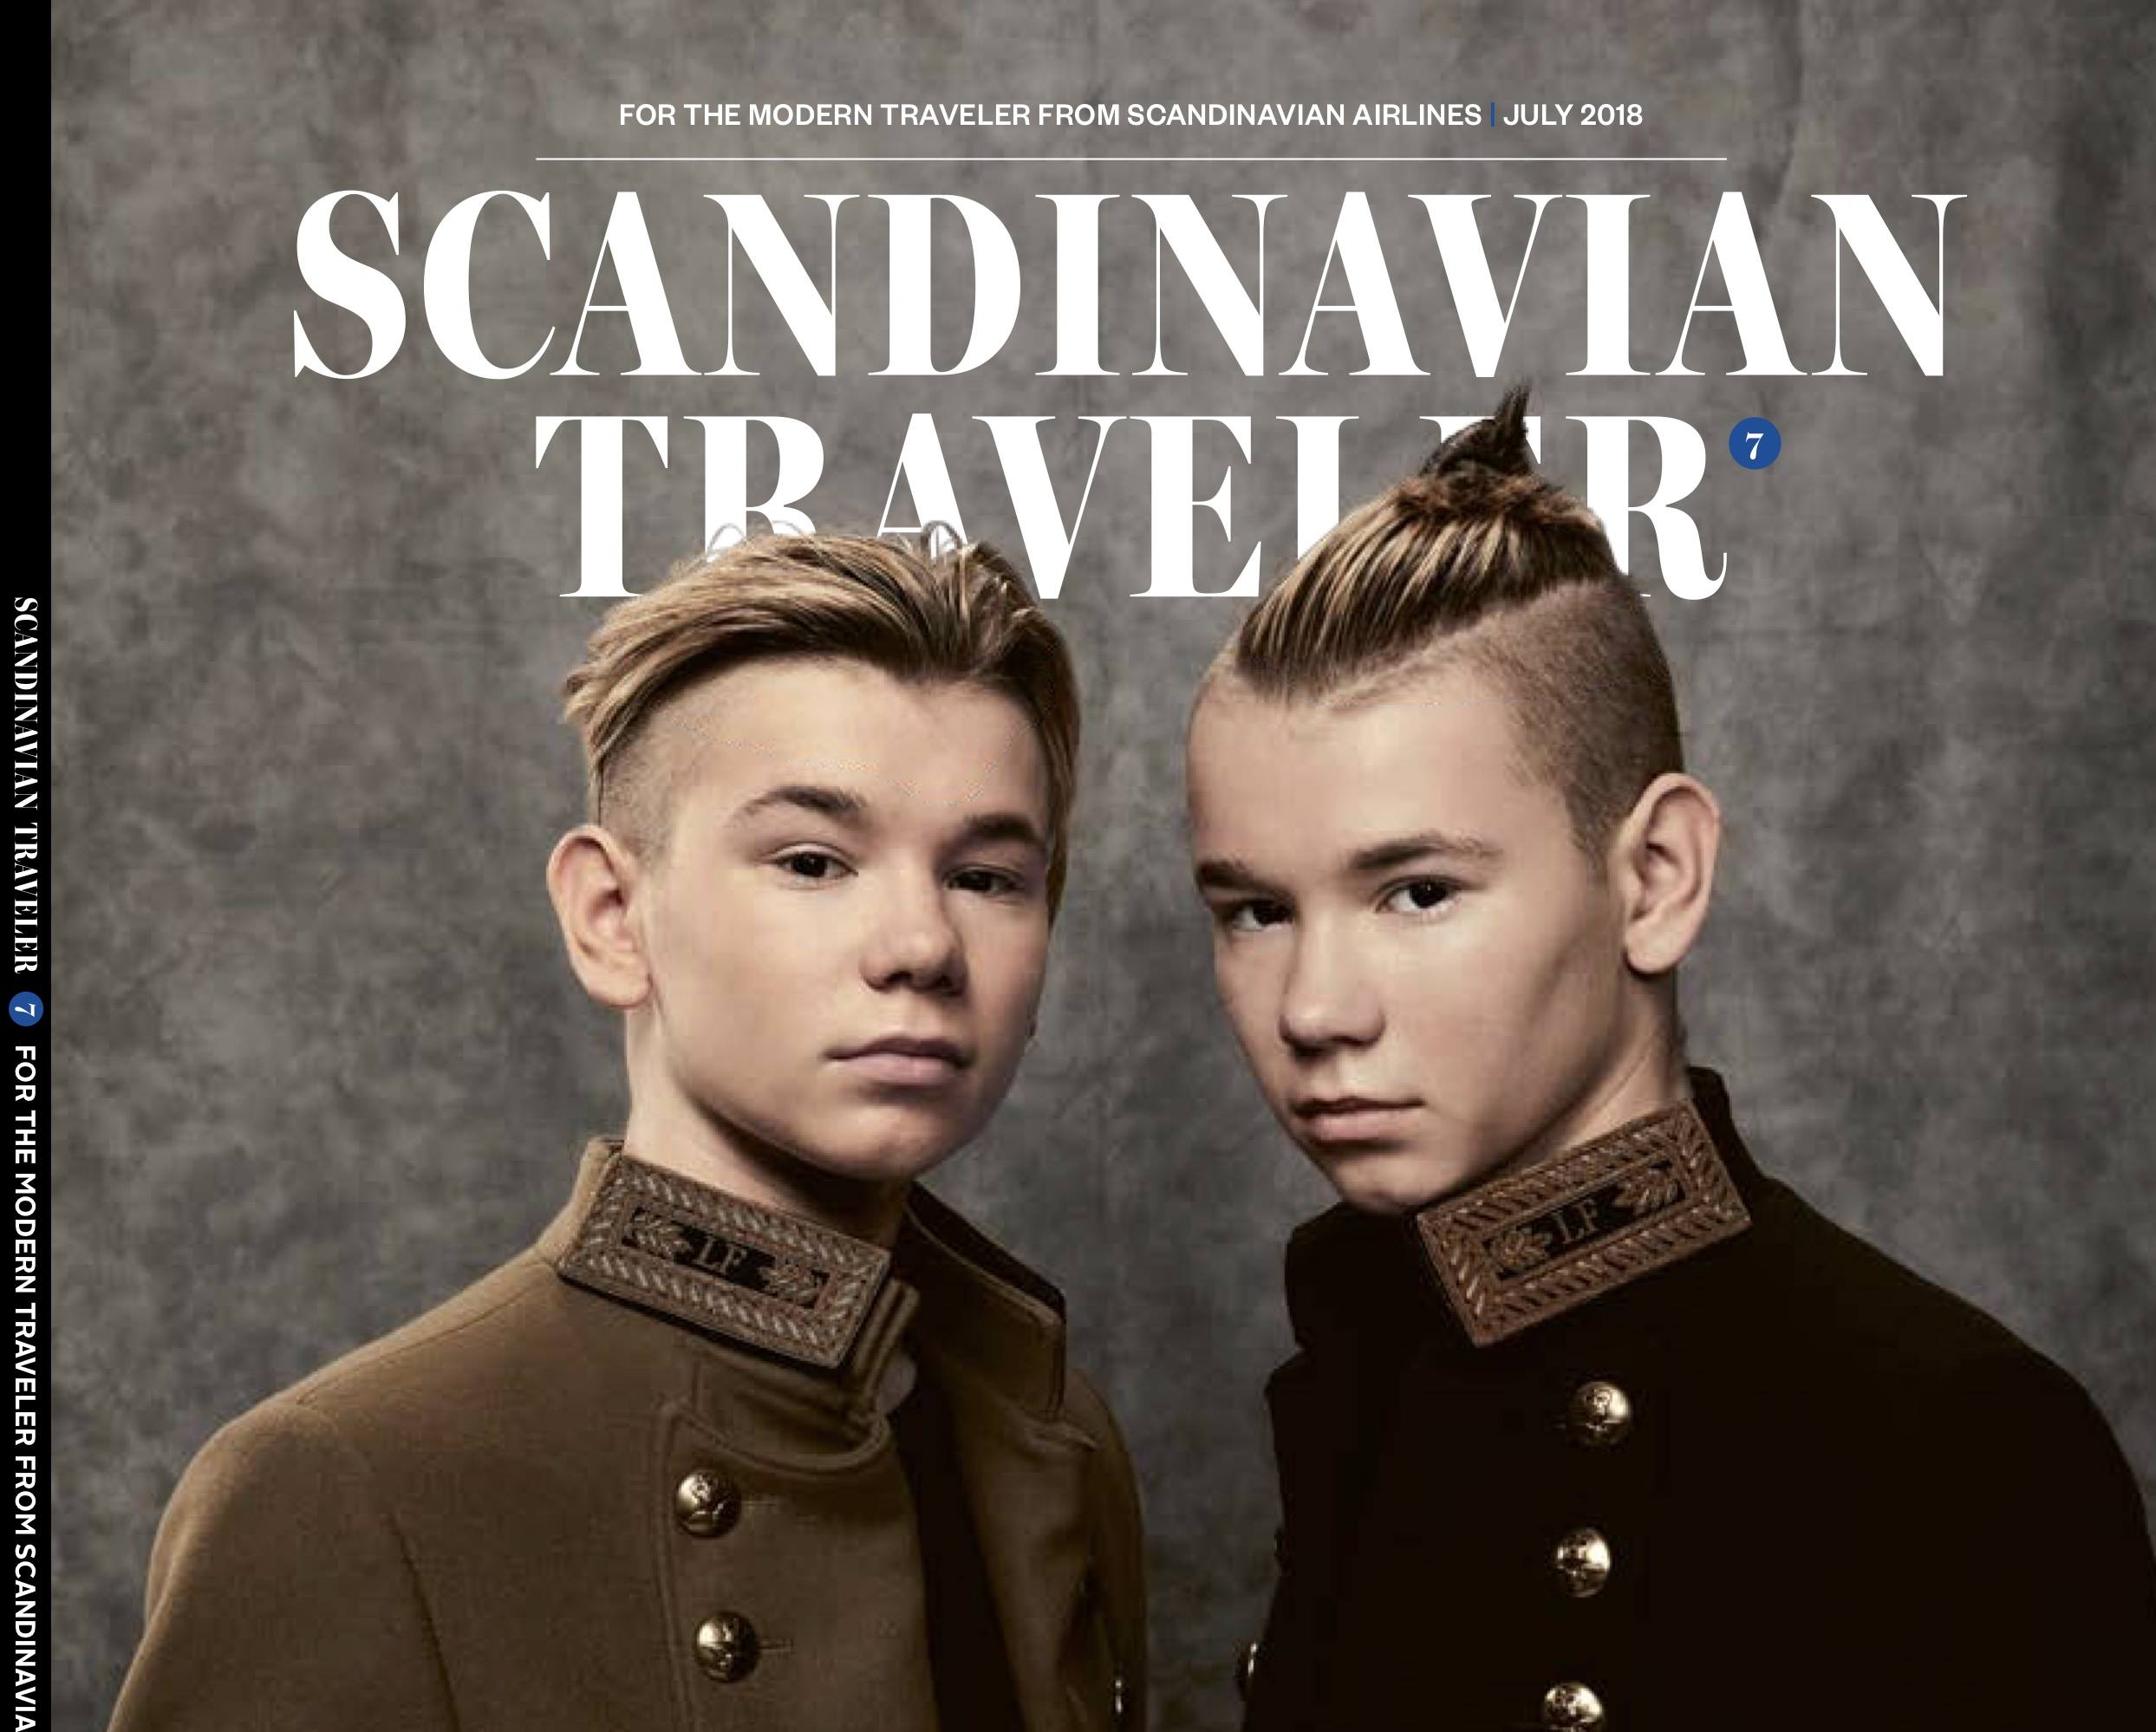 Scandinavian Traveler magazine cover